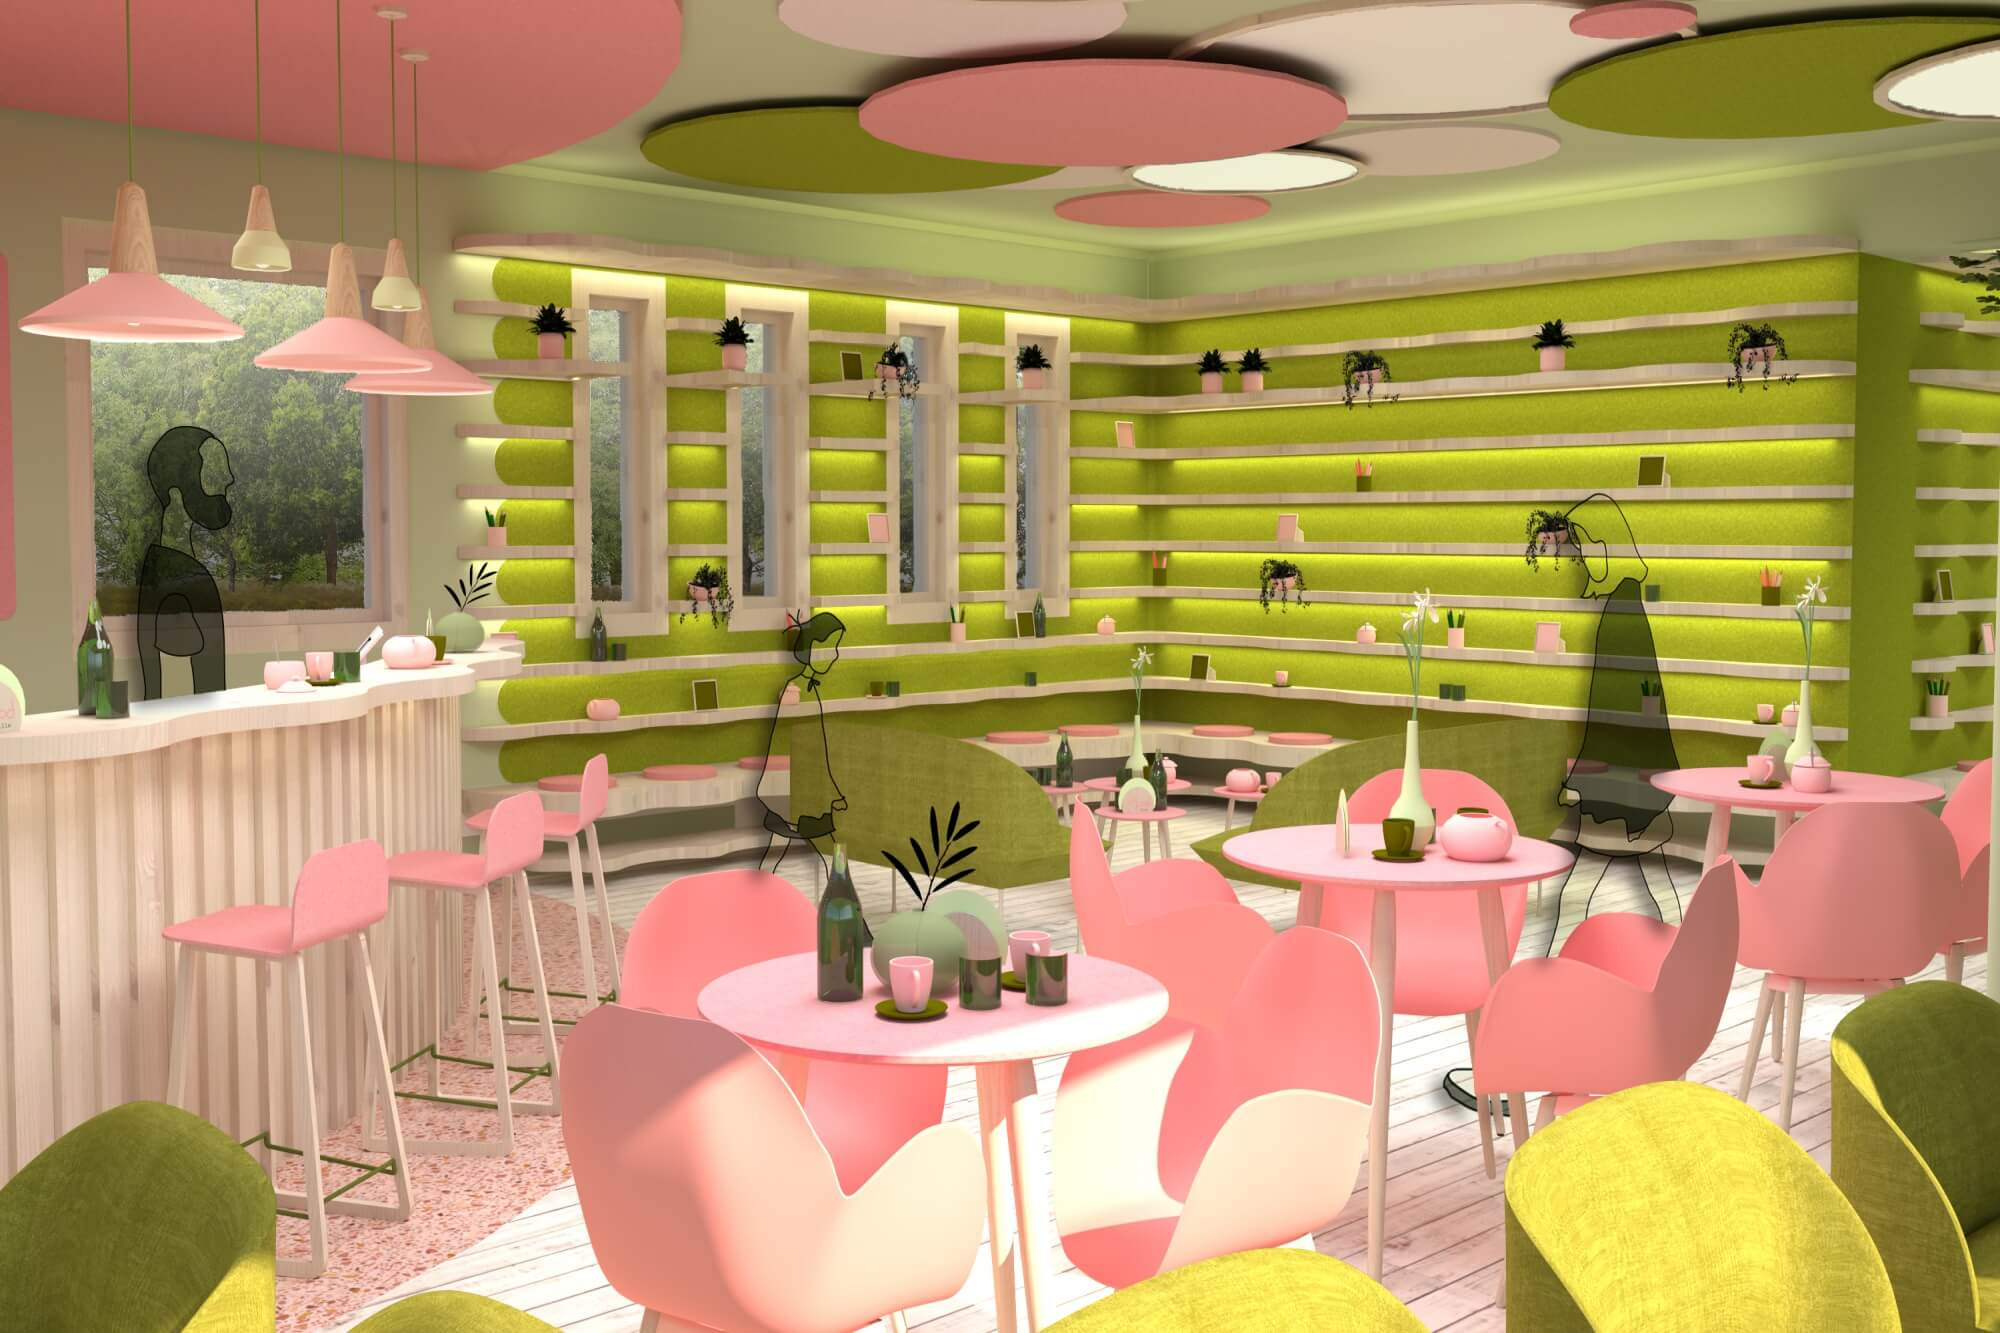 Digital illustration of a modern pink and green cafe with table seating and a bar area